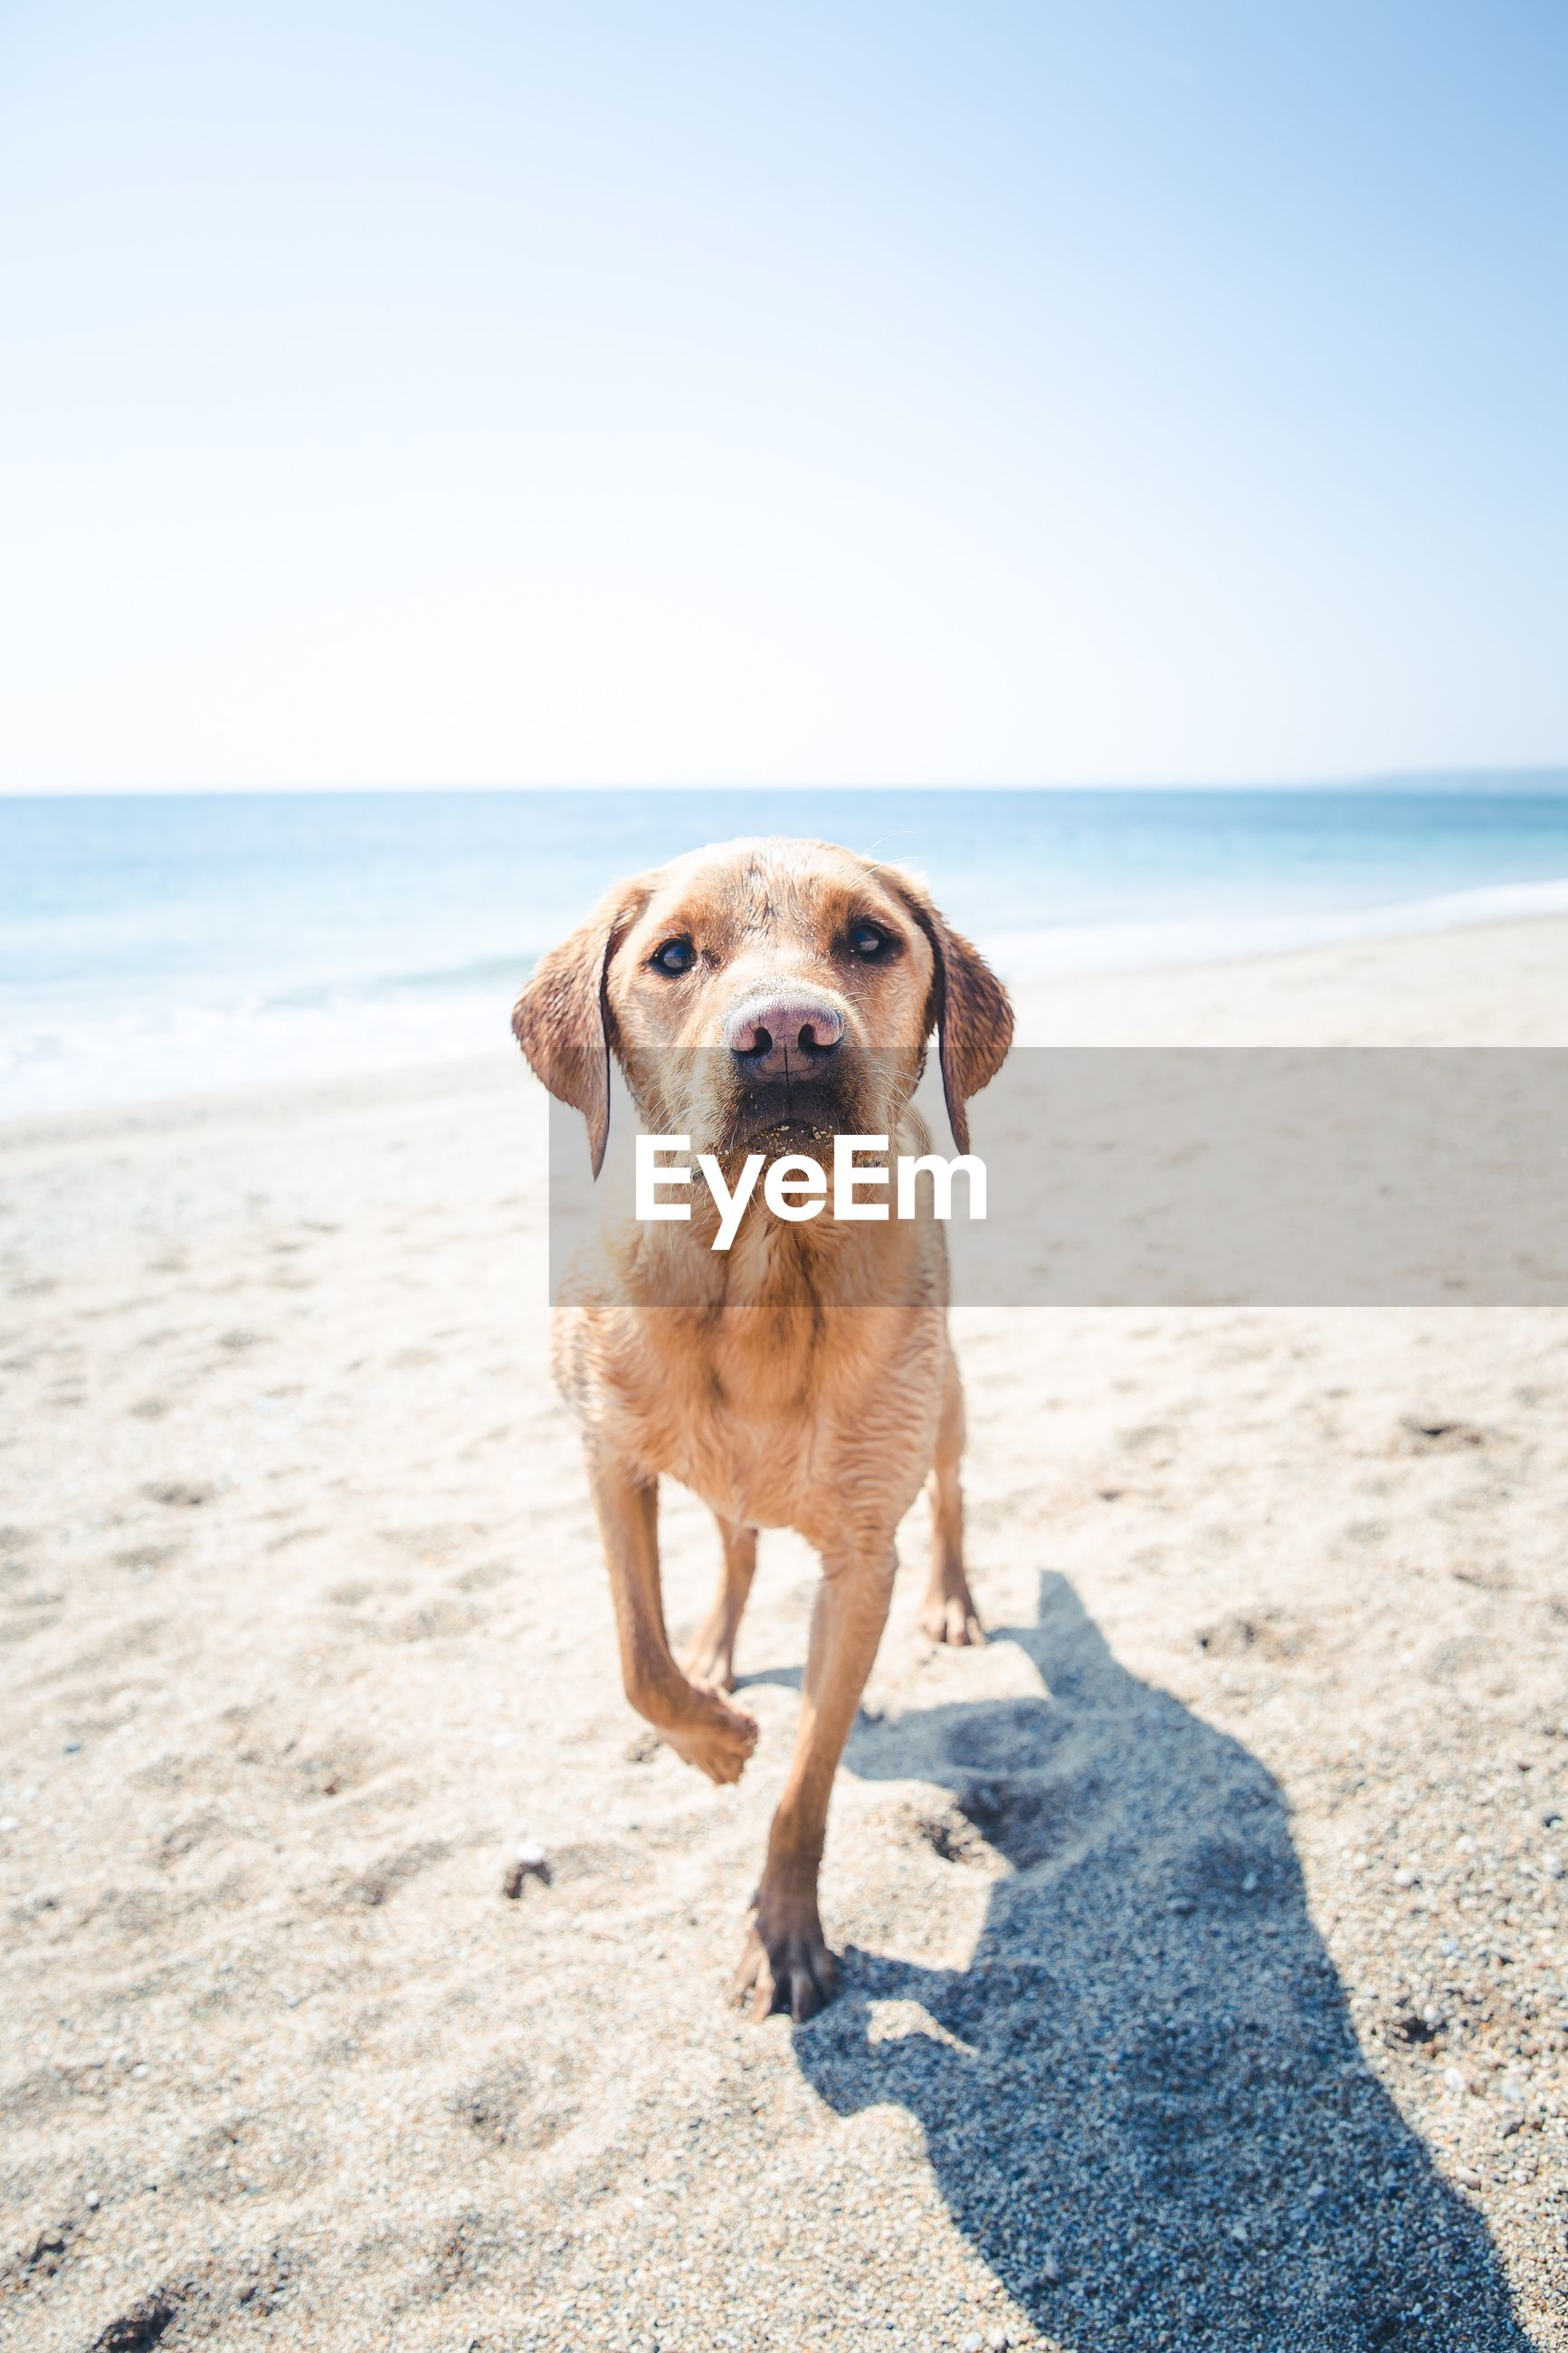 Portrait of dog walking on sand at beach against clear sky